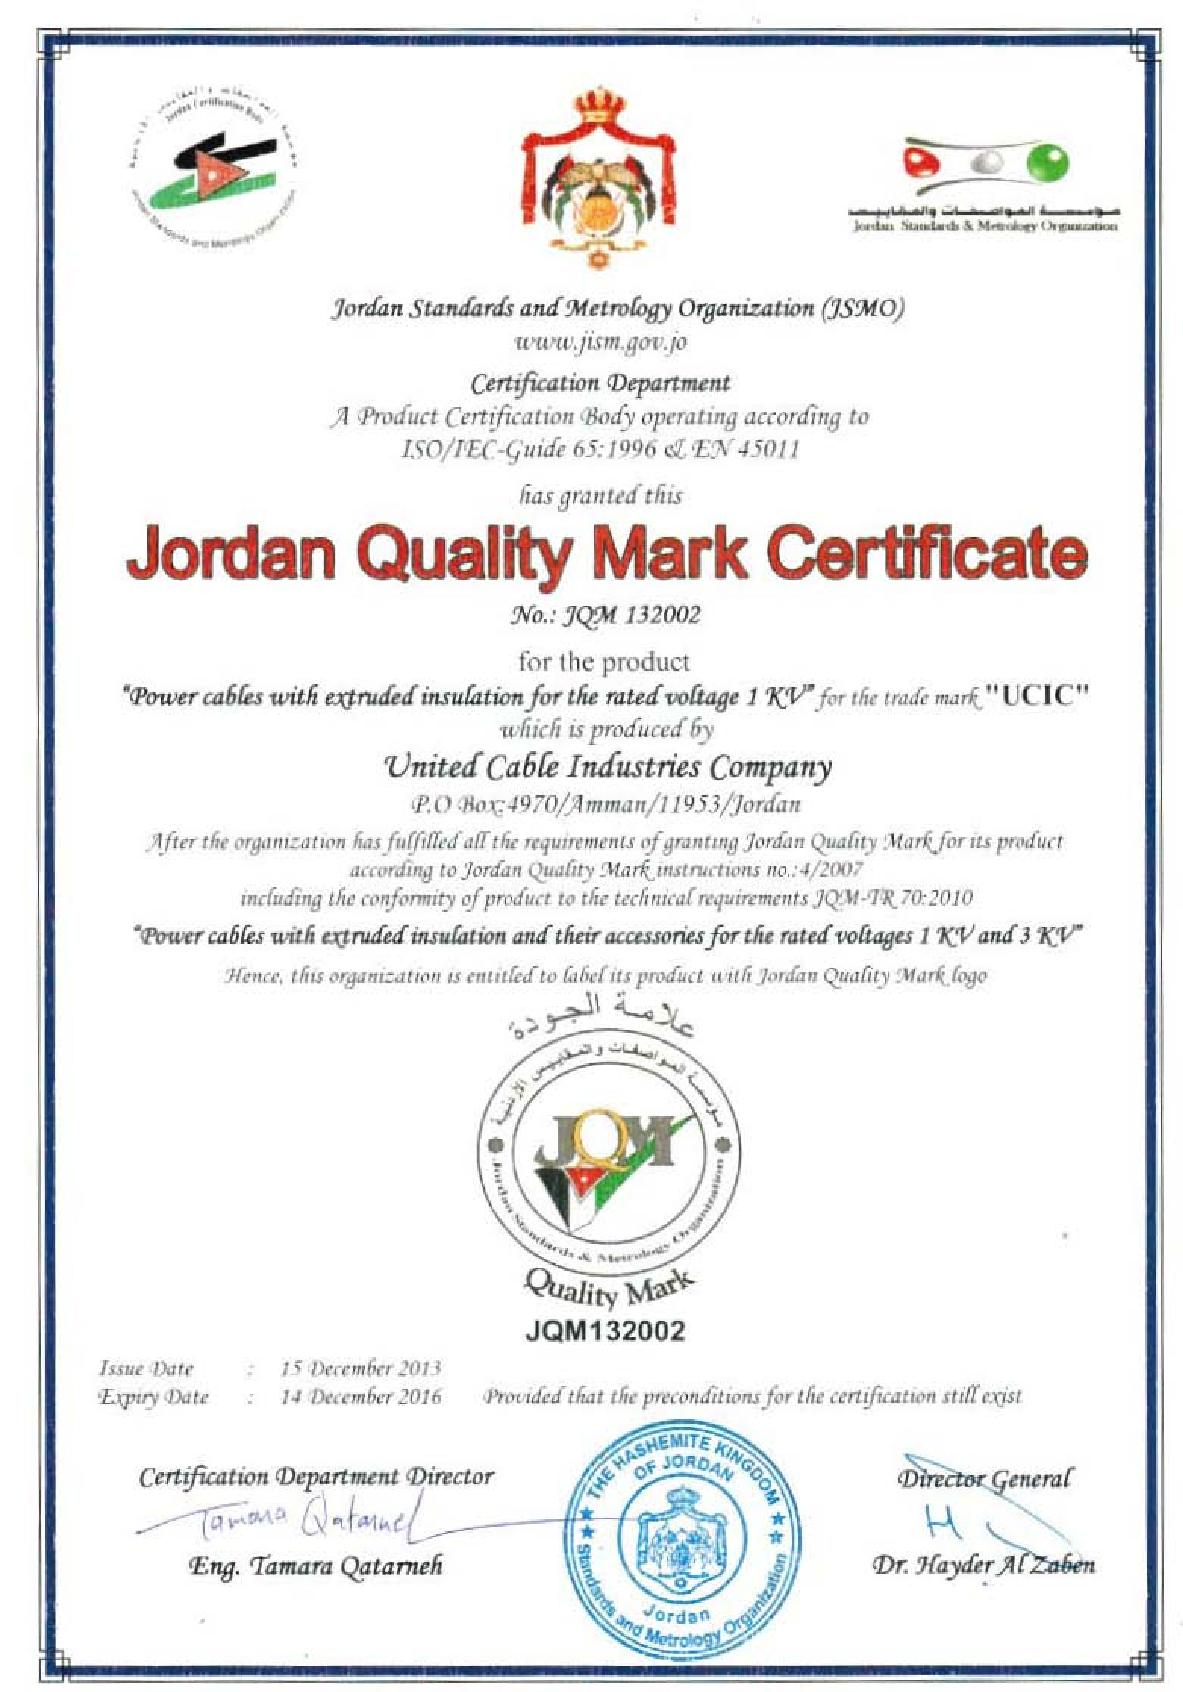 Jordan Quality Mark Certificate (Power Cables for rated voltage 1 KV)